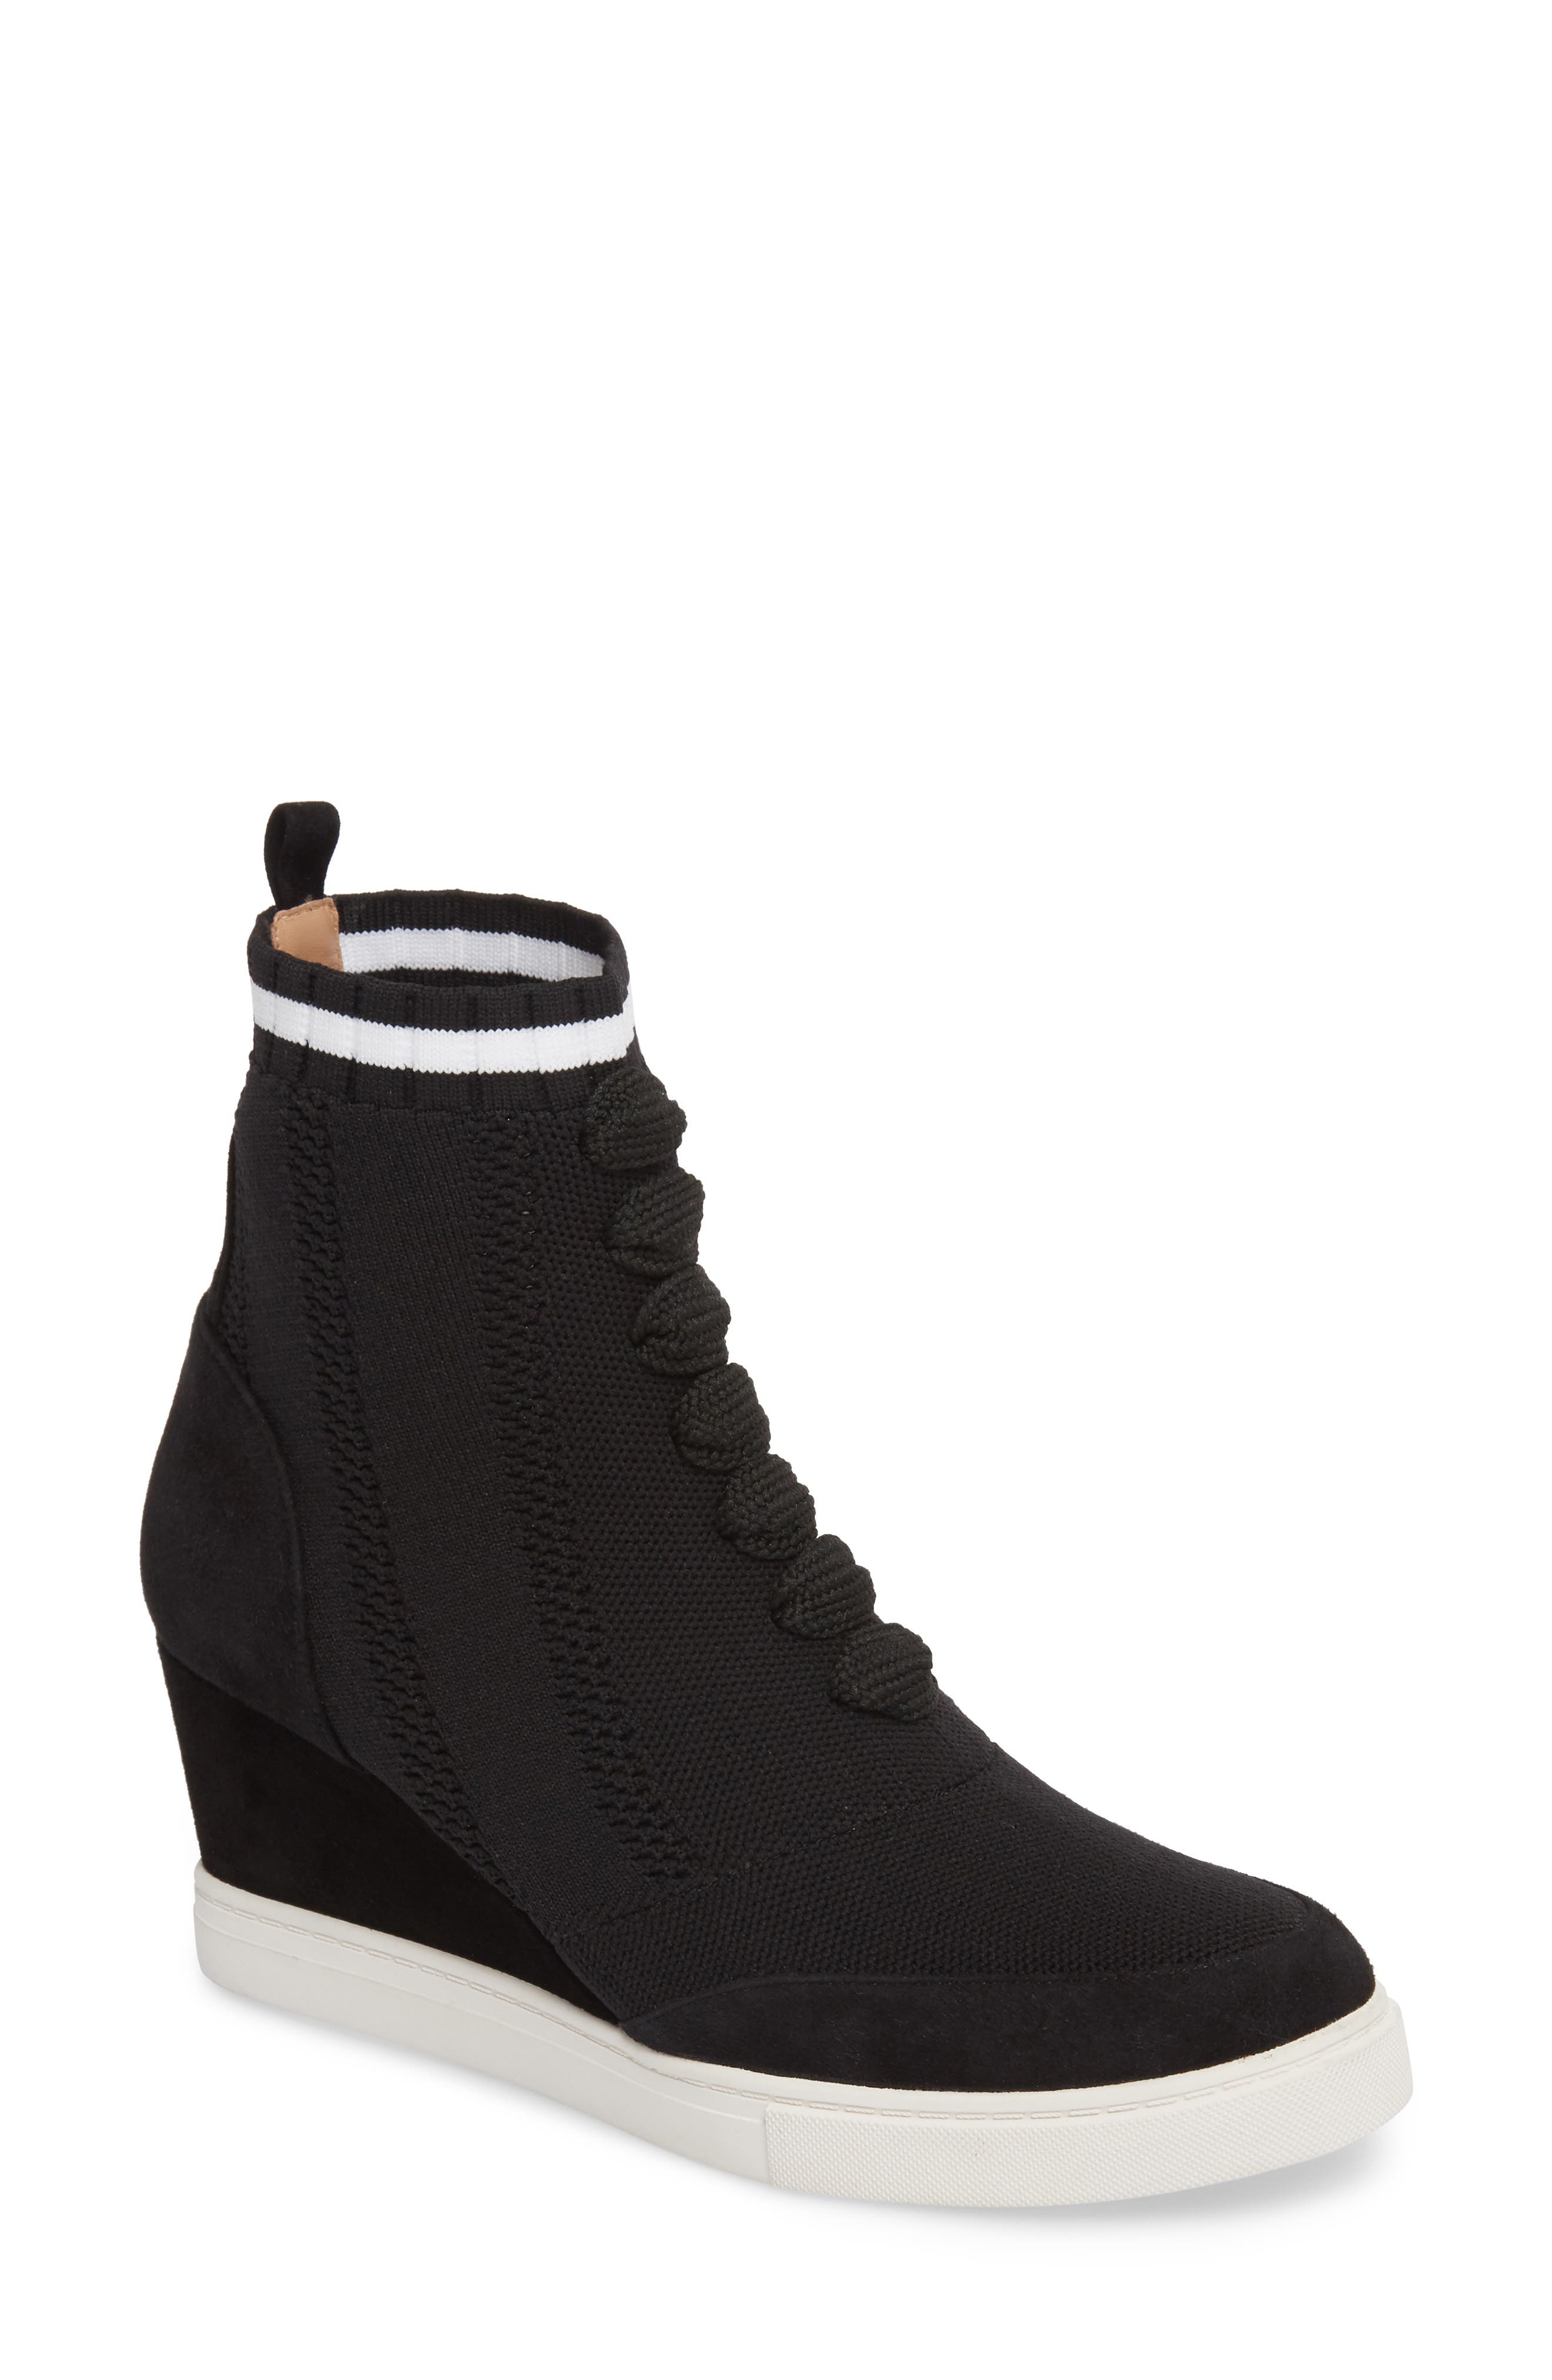 LINEA PAOLO, Fabiana Wedge Sneaker, Main thumbnail 1, color, BLACK SUEDE